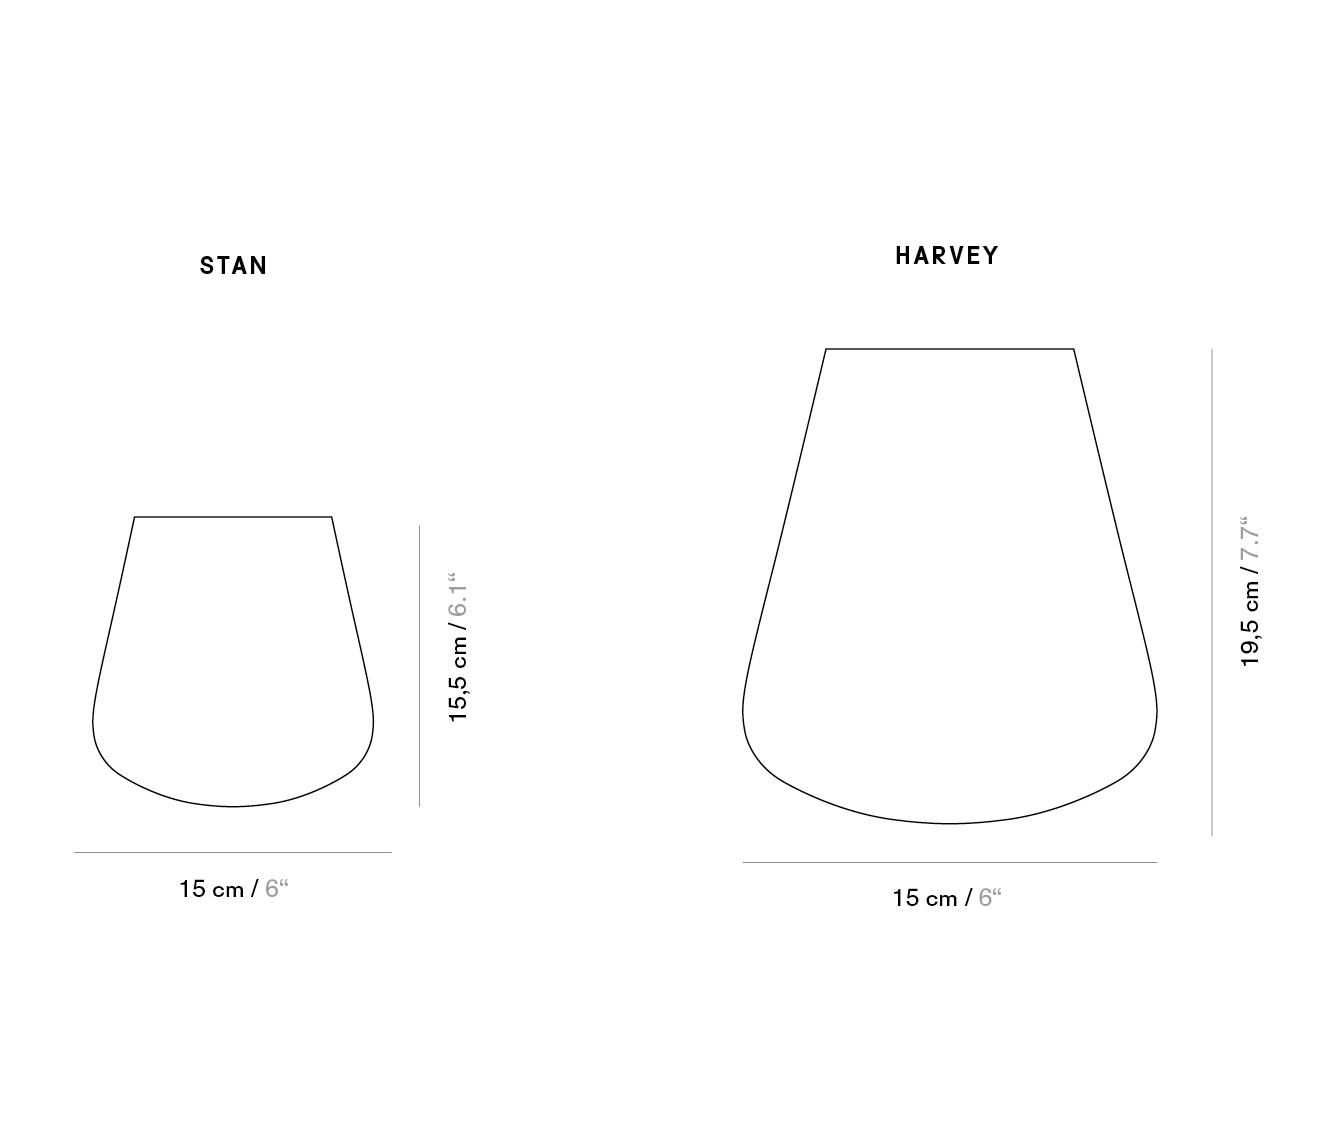 Couchtisch Stan Stan Harvey Vases Vases From Edition Nikolas Kerl Architonic